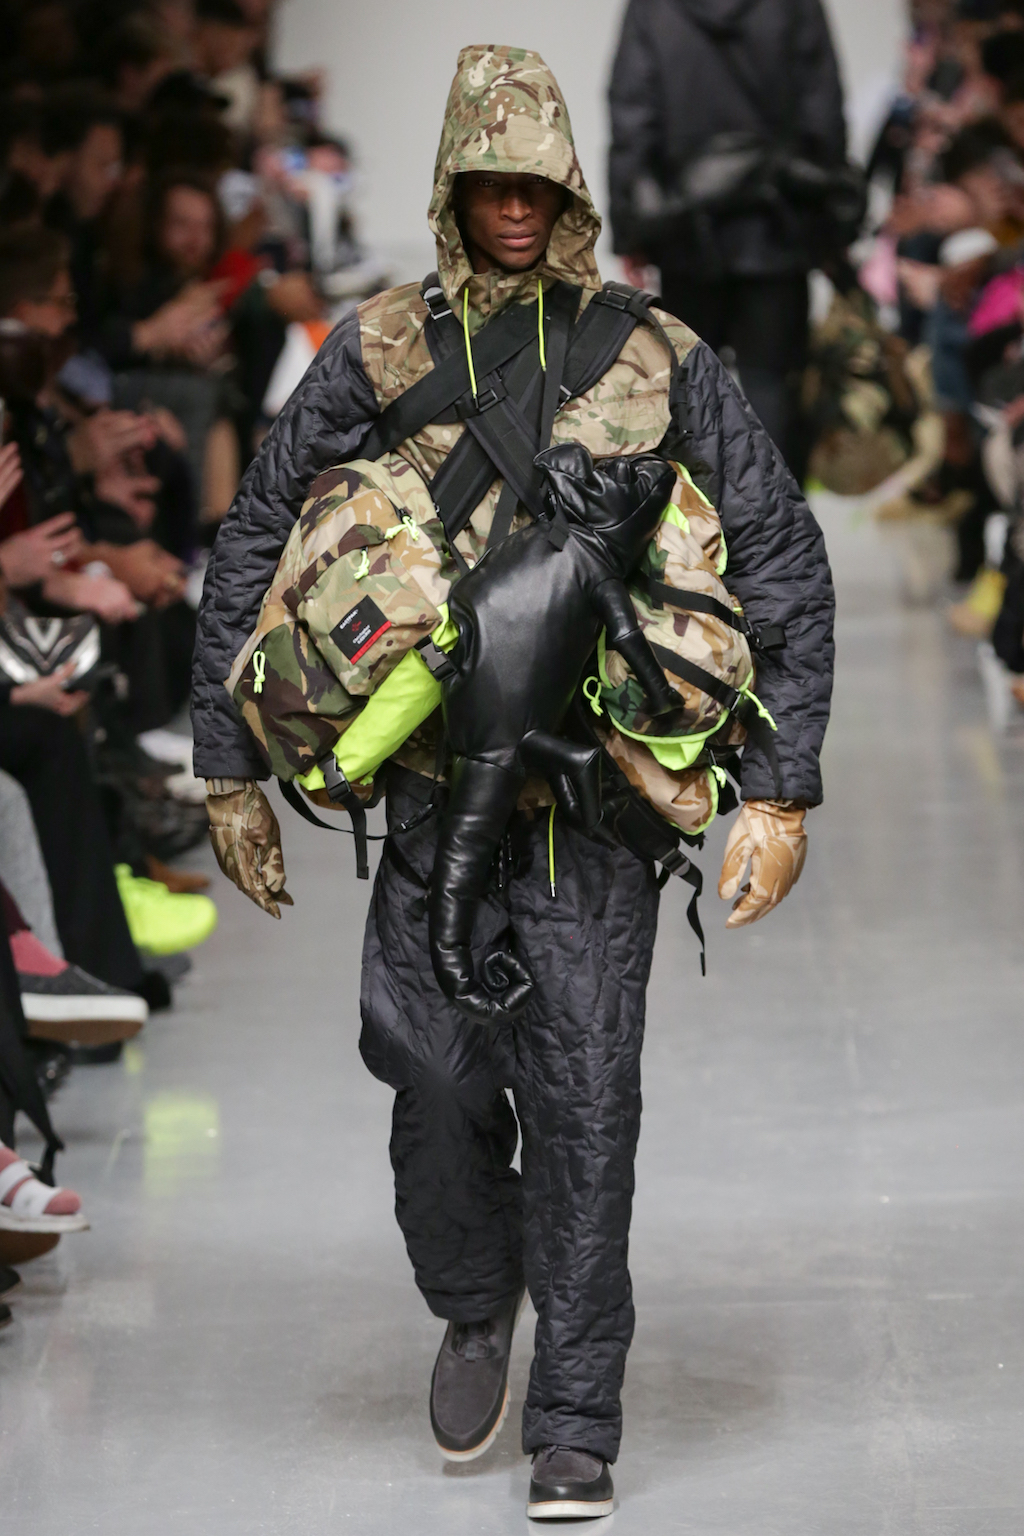 Christopher Reaburn take the camo print more literal, pairing it with a chameleon bag